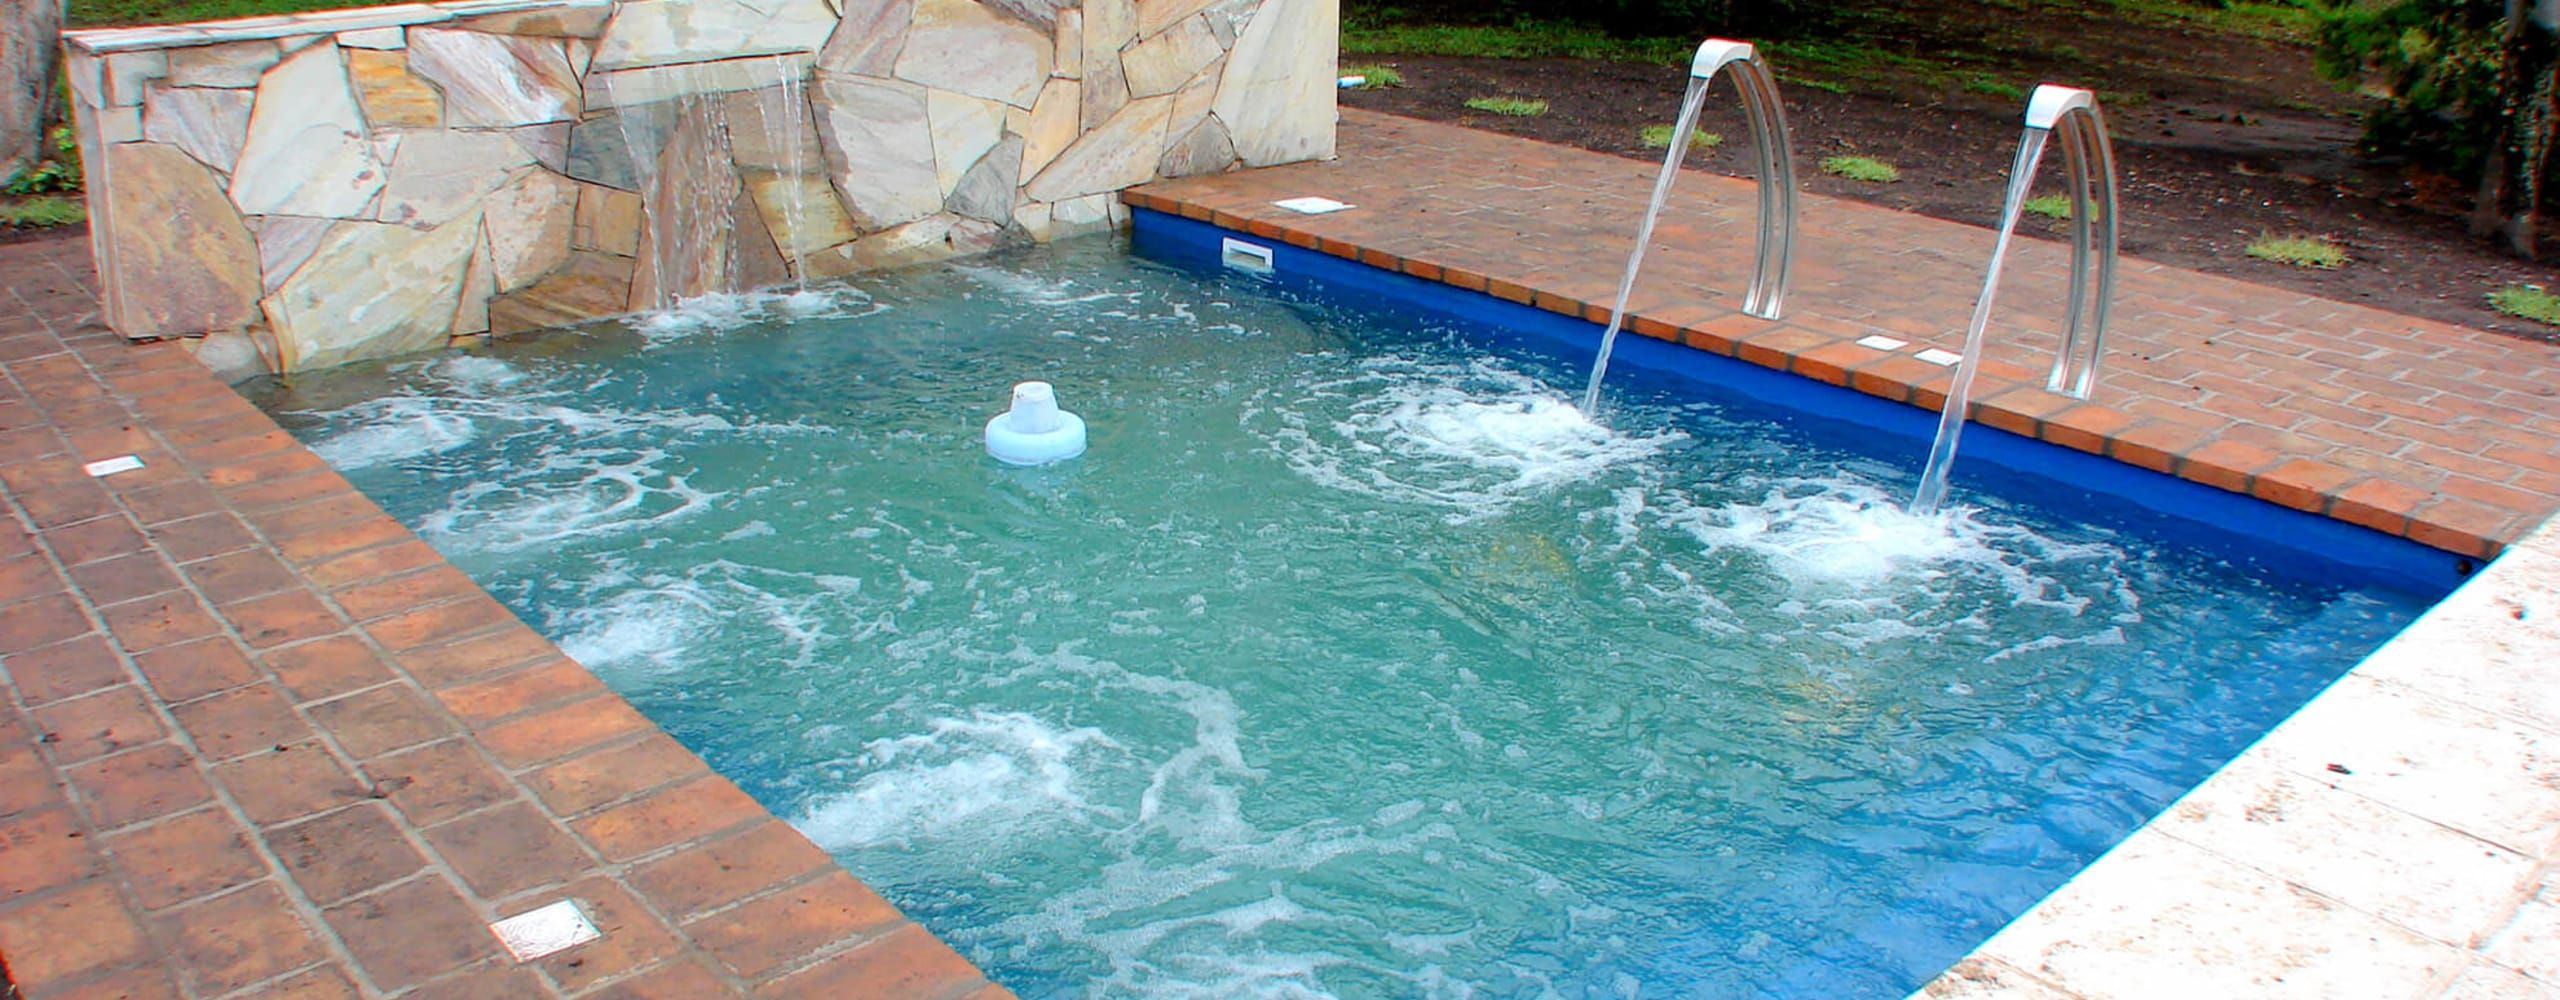 10 Pools That Are Perfect For Small Gardens Homify Pool Small Gardens Luxury Garden